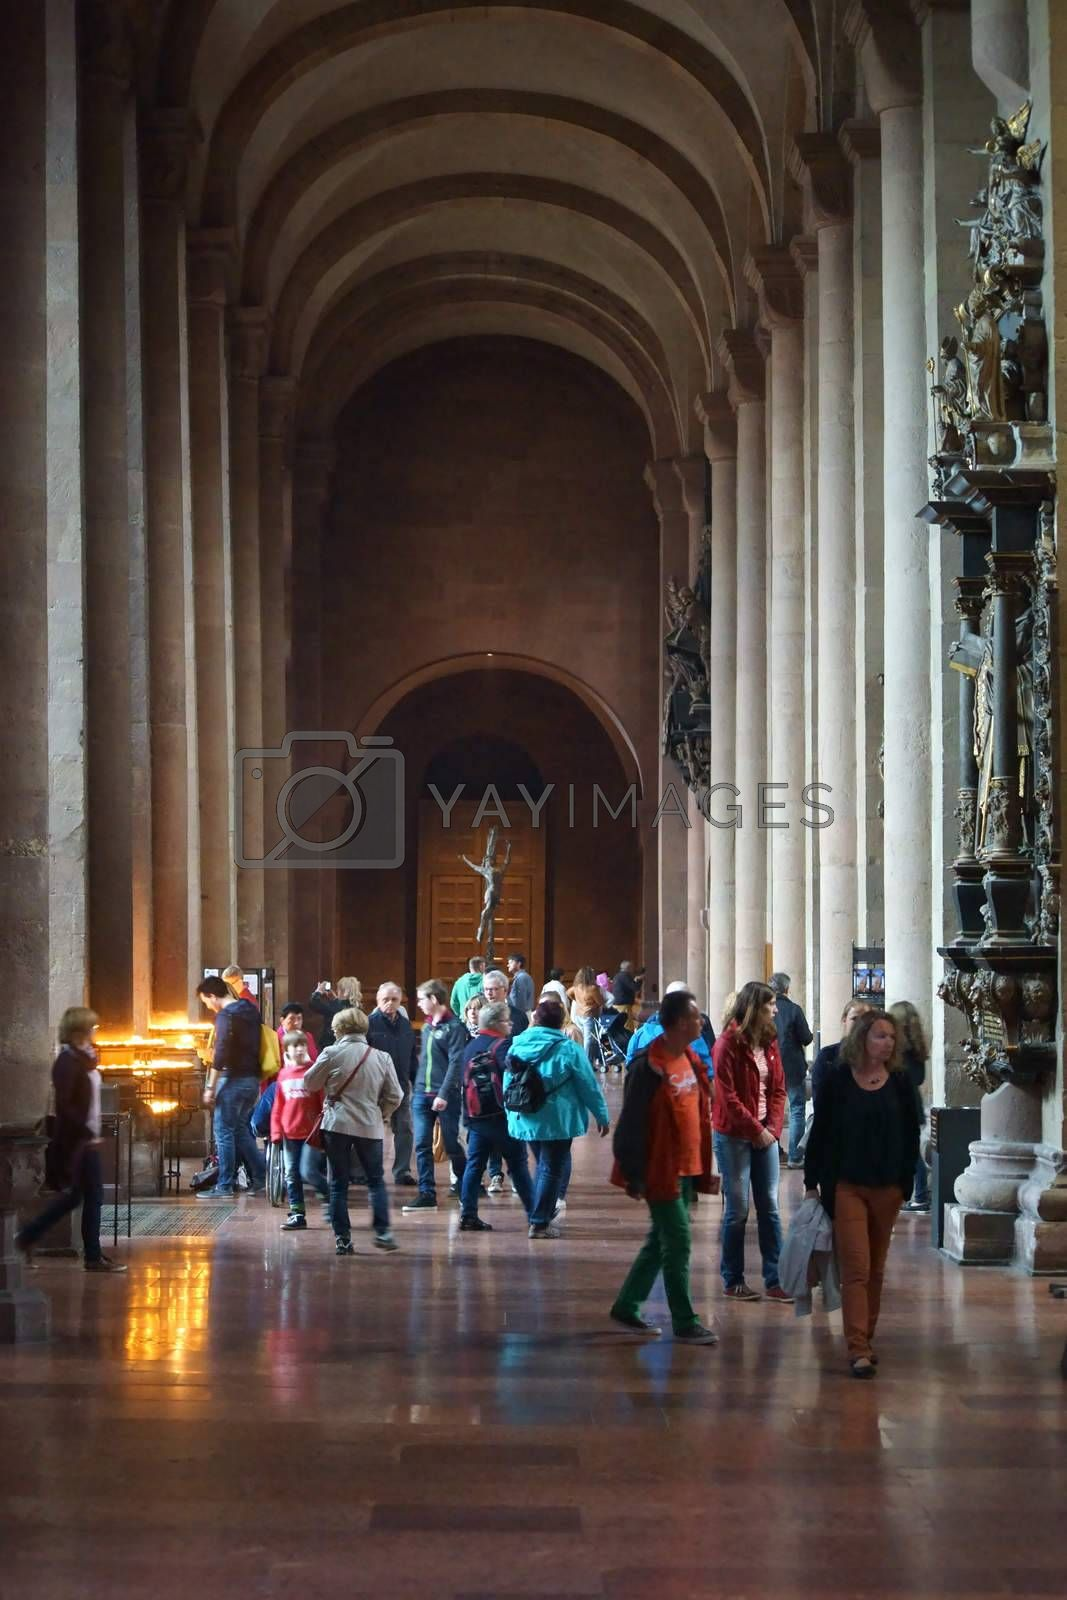 Mainz, Germany - September 04, 2015: The beginning and the pillar vault of the Mainz Cathedral with visitors and religious art on September 04, 2015 in Mainz.